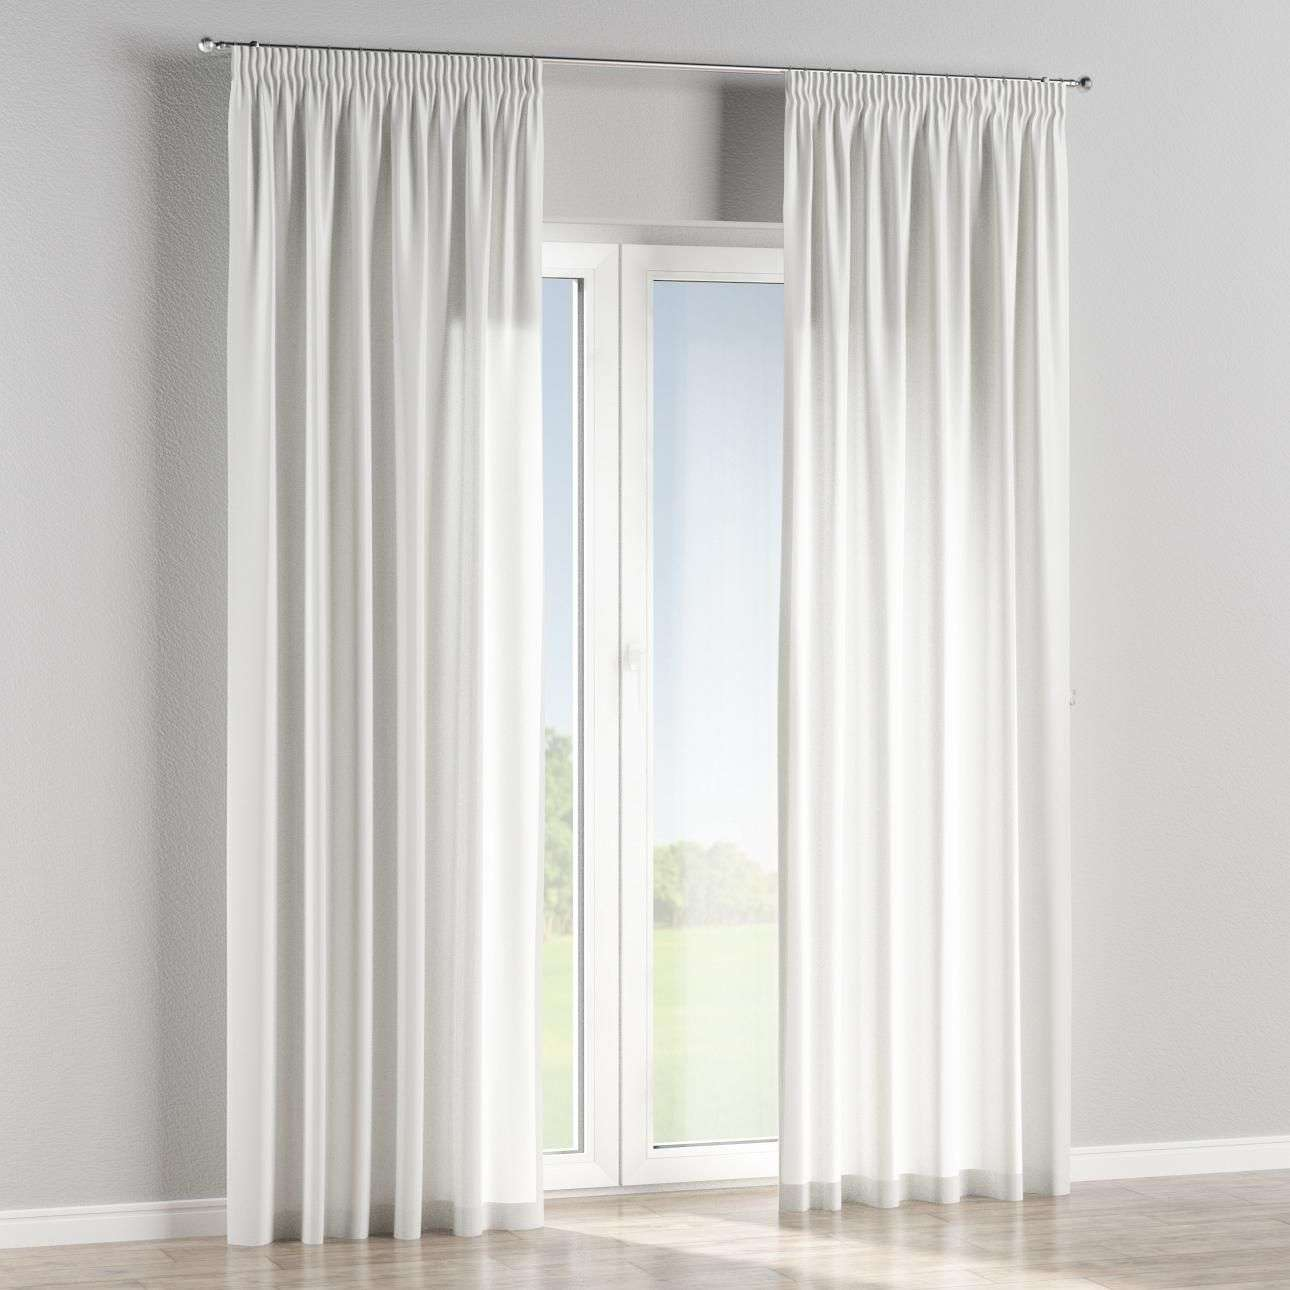 Pencil pleat lined curtains in collection Bristol, fabric: 125-32